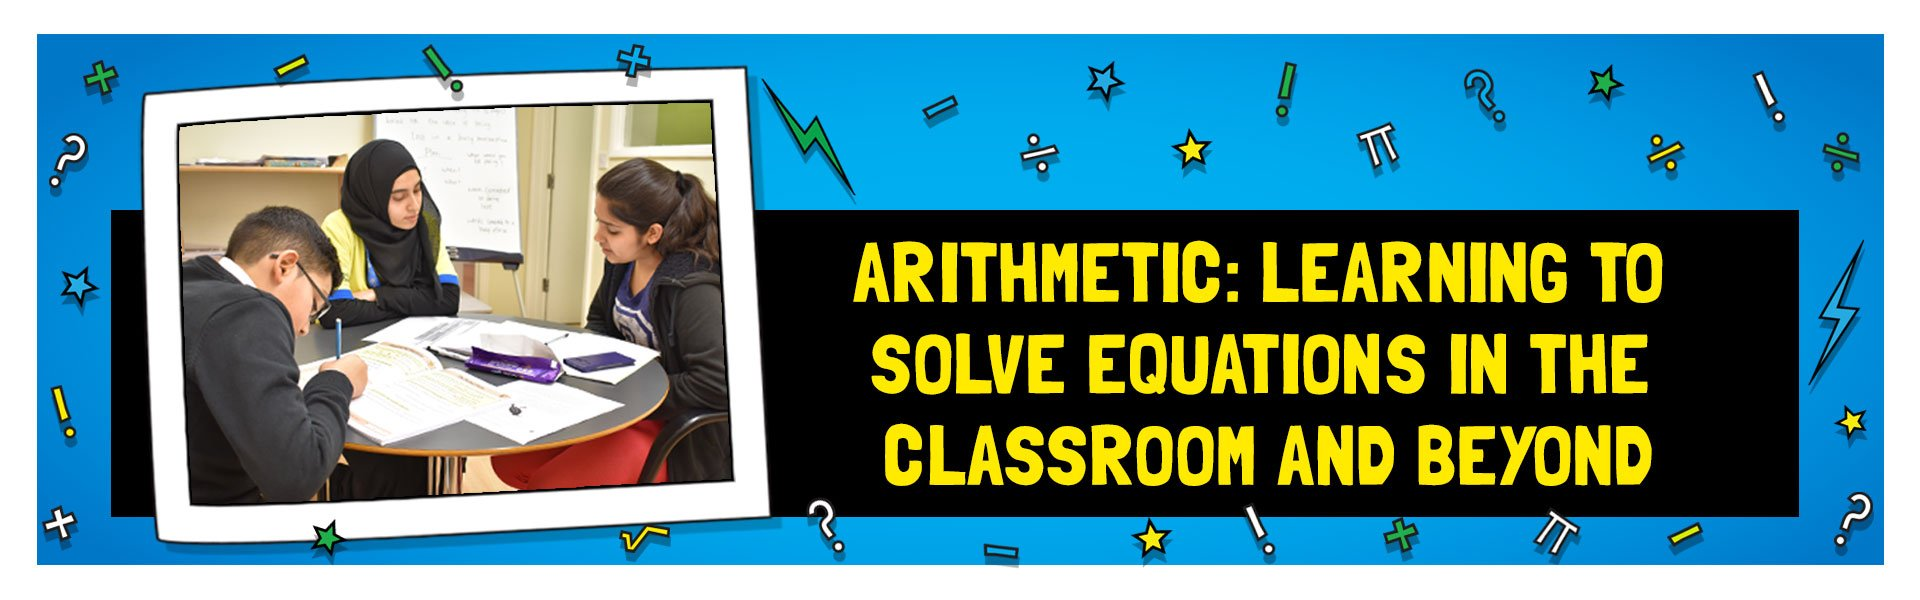 Arithmetic: Learning to Solve Equations in the Classroom and Beyond